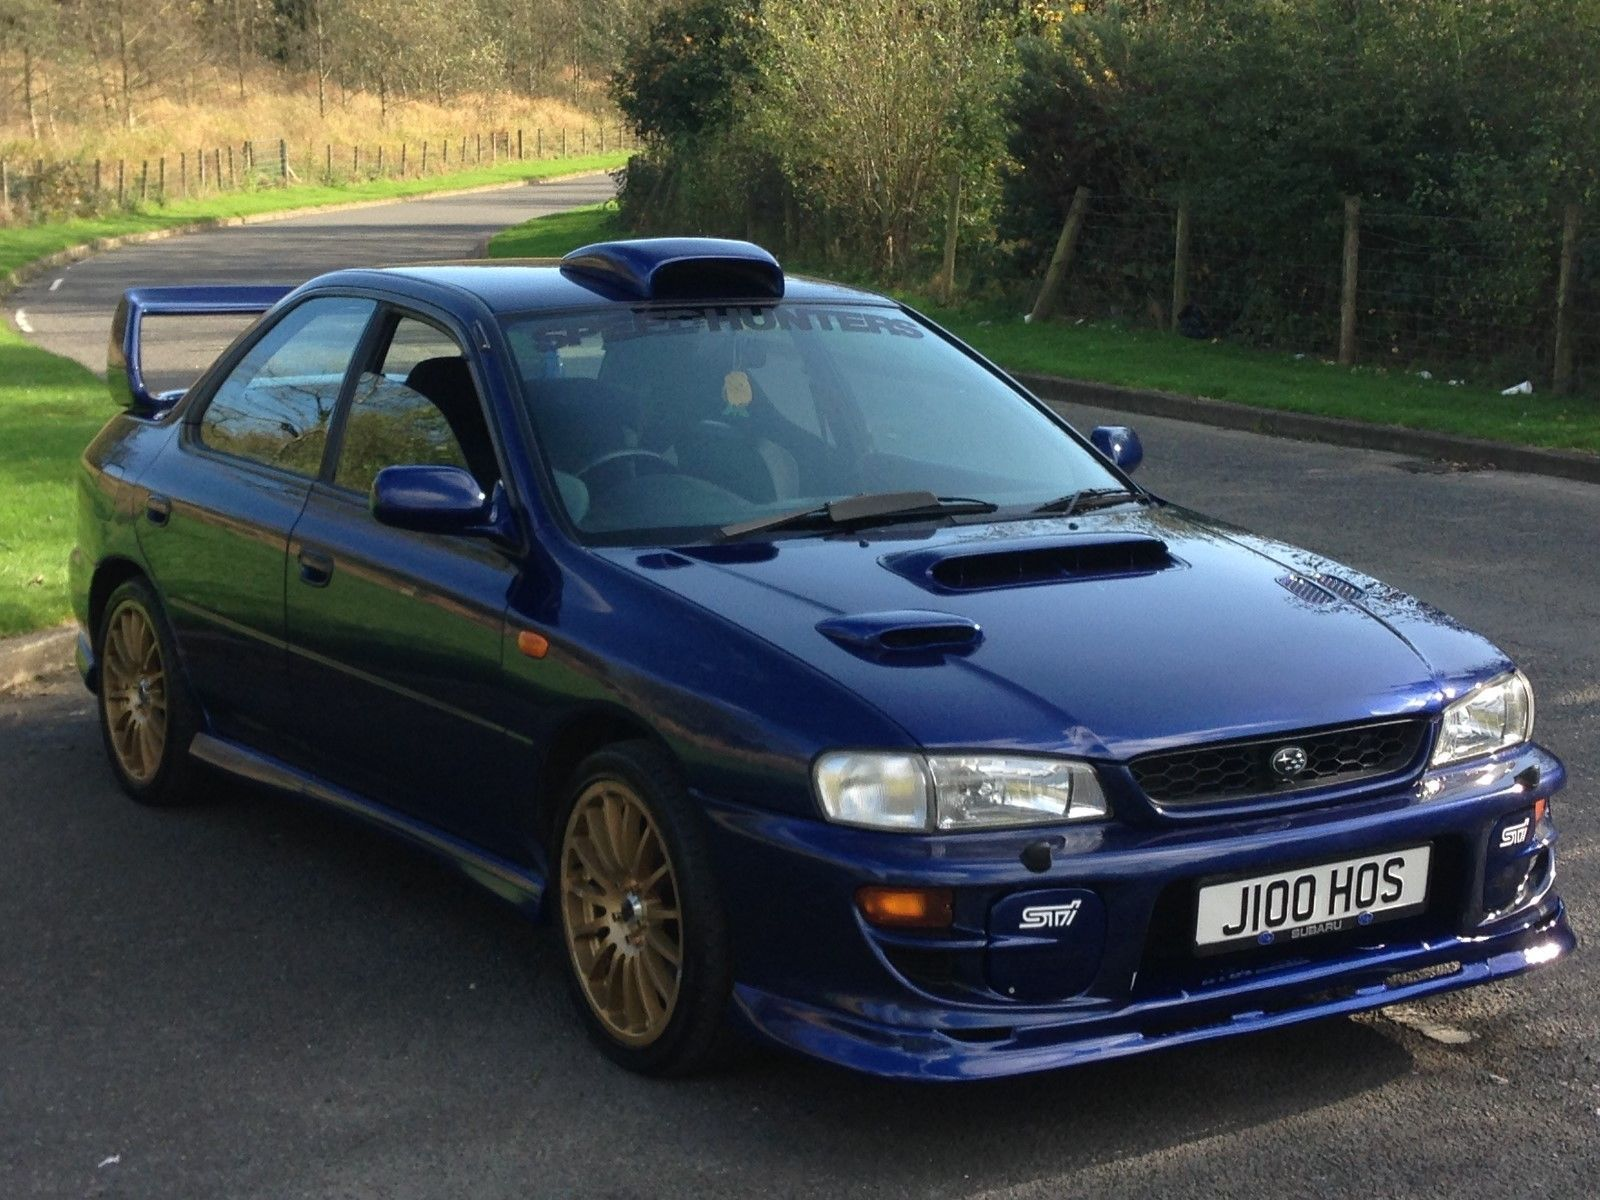 1999 subaru impreza uk turbo 2000 *** wrx sti type ra 4x4 blue 260 ...